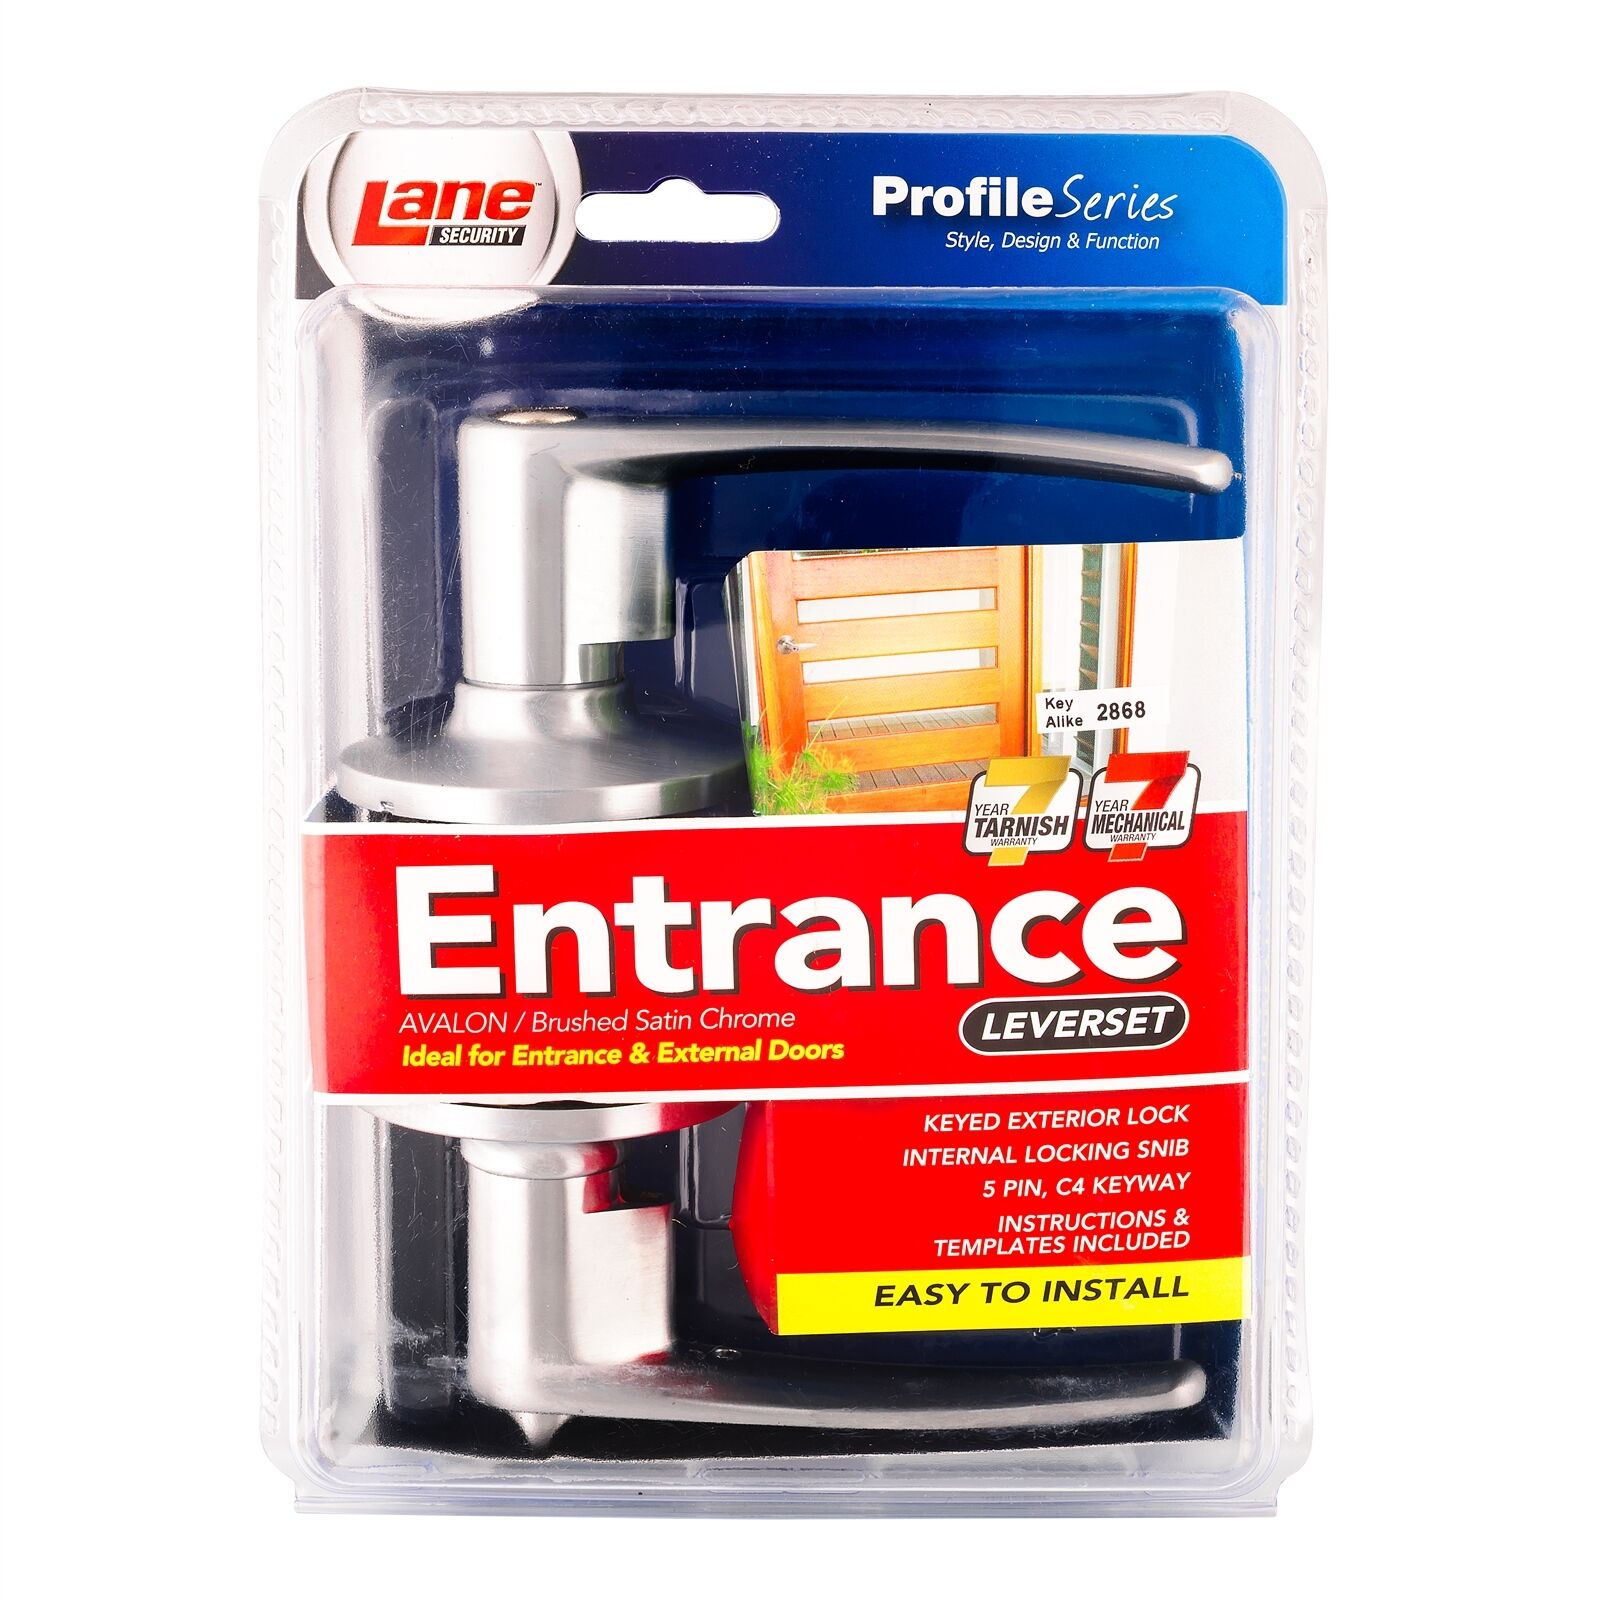 Lane DOOR ENTRY LEVERSET 5 Pin C4 Keyway- Satin Chrome Plated Or Polished Chrome